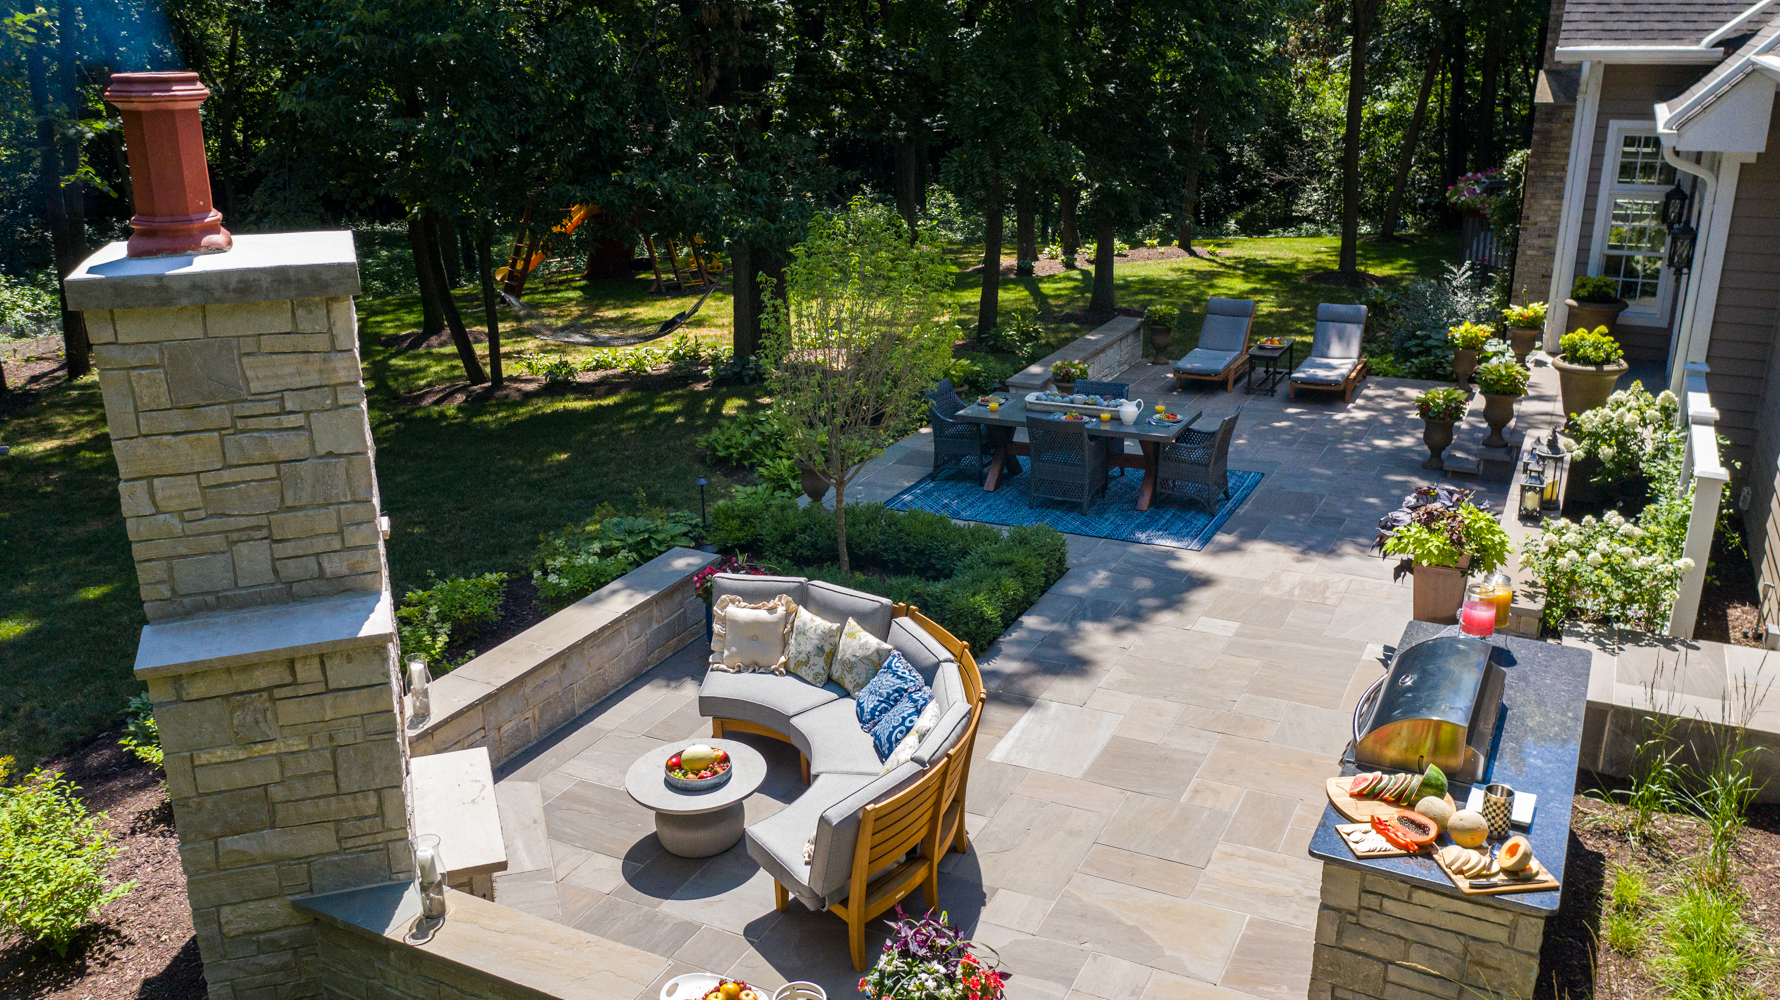 The Cost of Landscape Design & Installation in Suburban Chicago - What To Consider